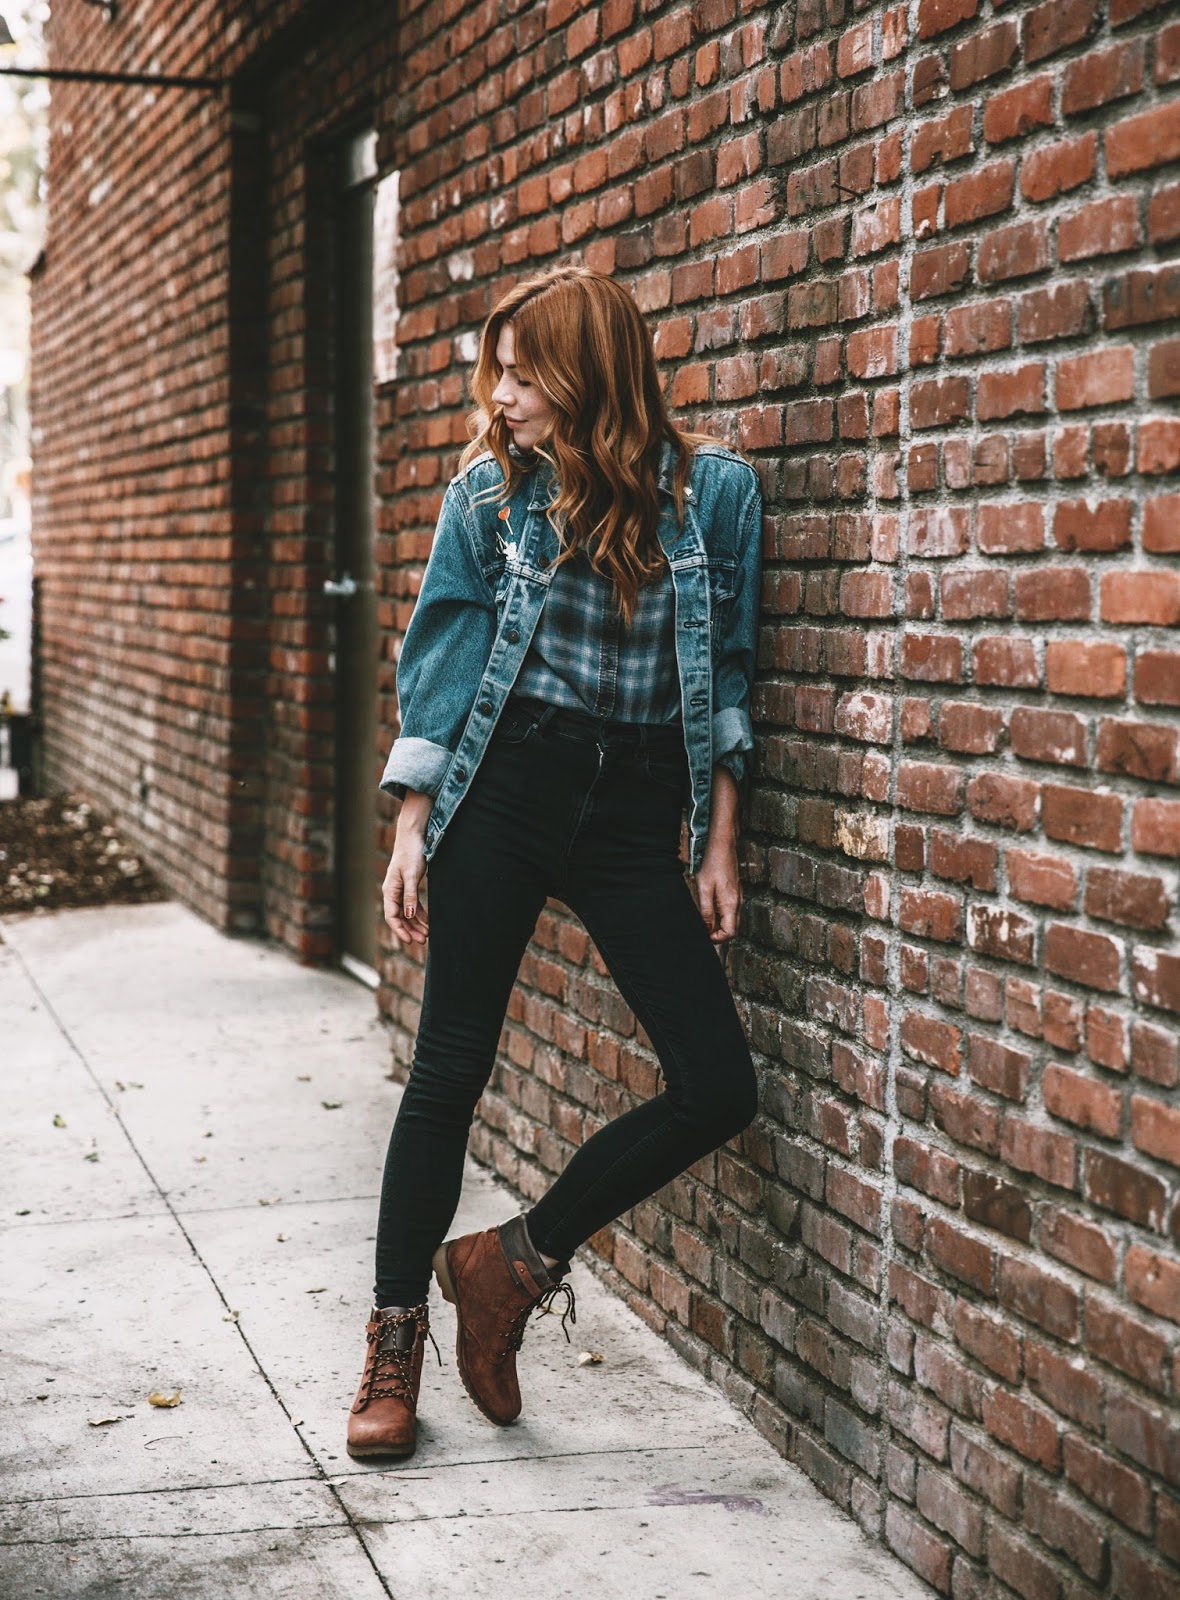 46ae96eeb6dc02 The De La Vina Lace Boots were definitely my favorite to style. I put them  together as part of a street style look that could easily work for a  mountain ...